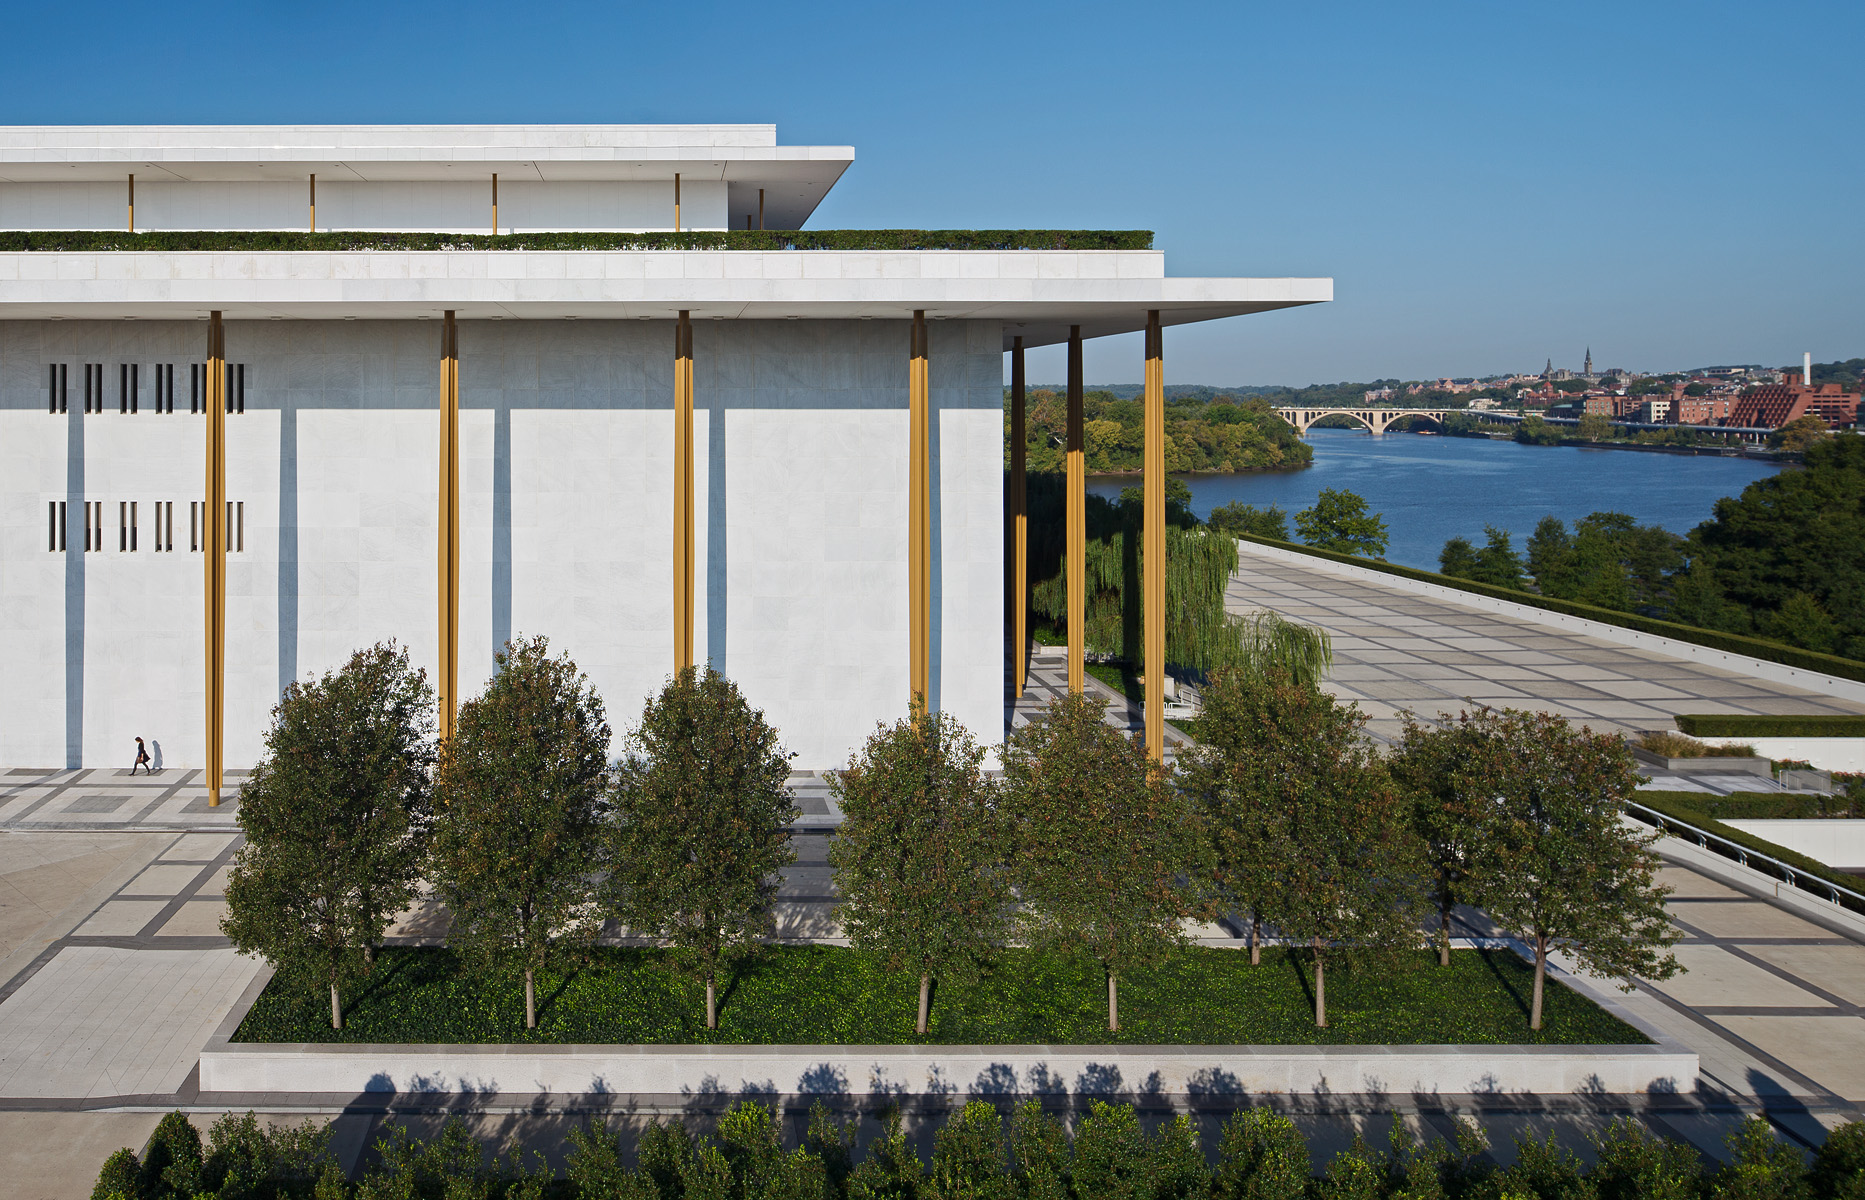 The Kennedy Center for the Performing ArtsWashington, DCThe Kennedy Center